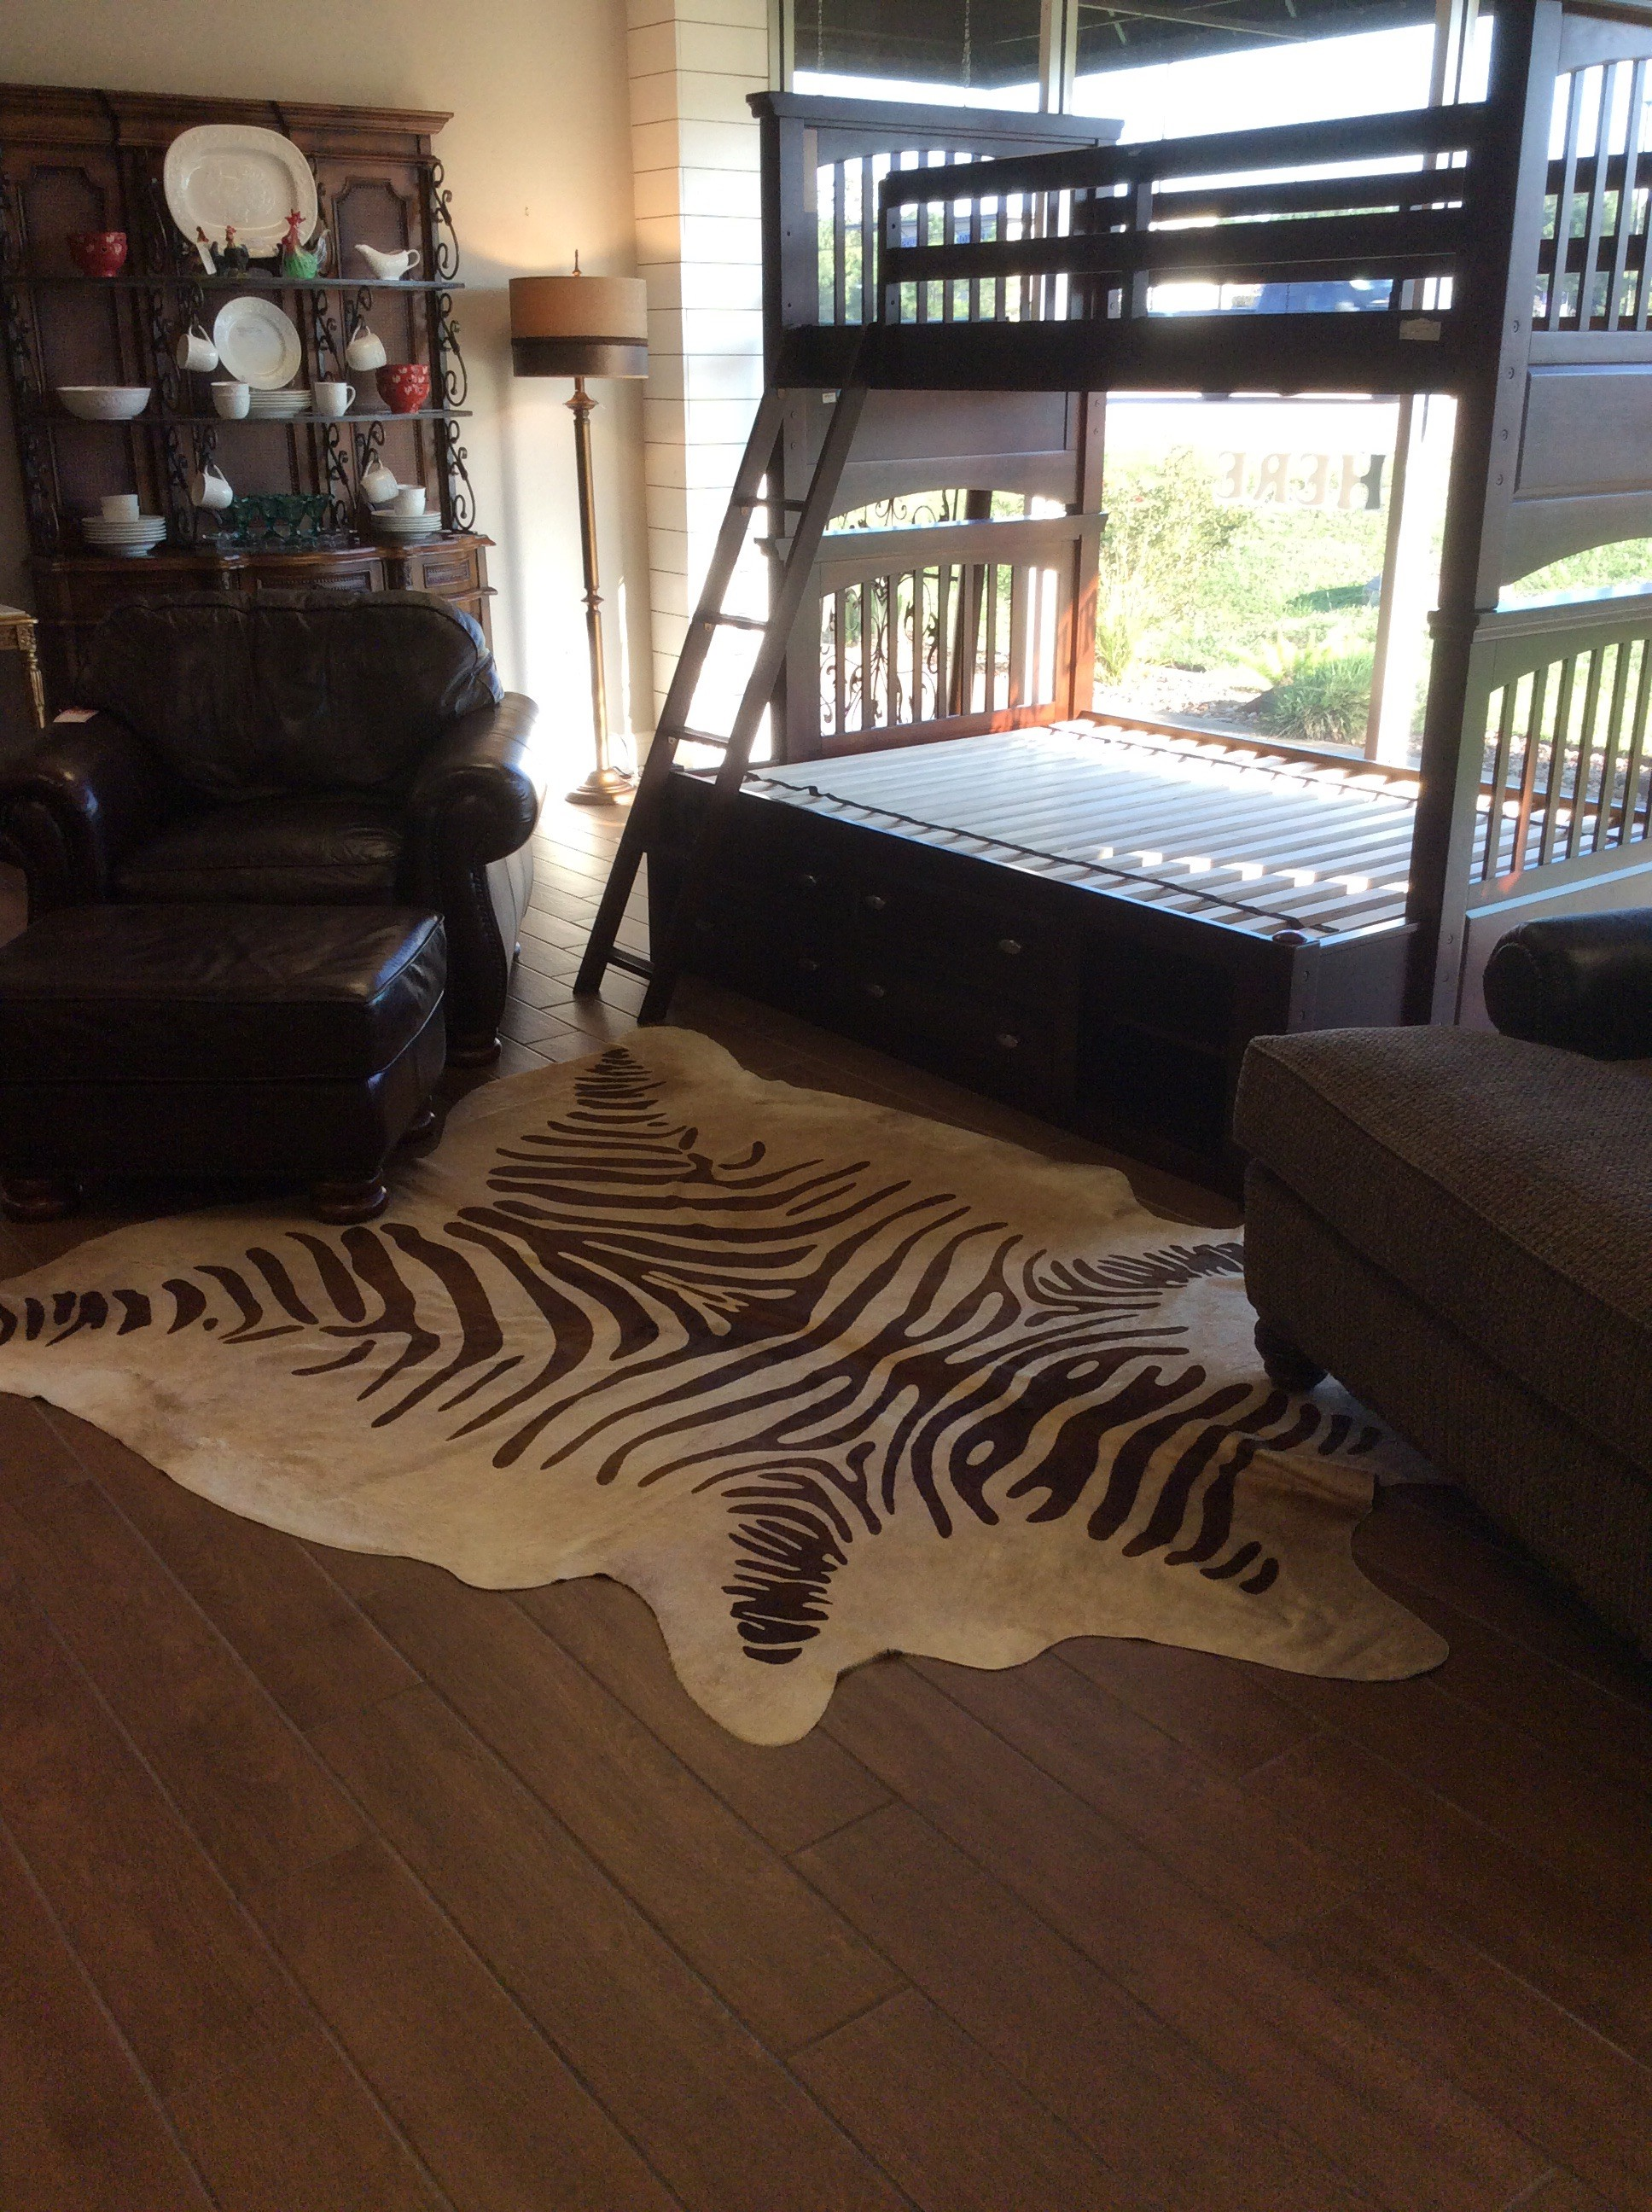 This cowhide has a zebra pattern stenciled onto it.